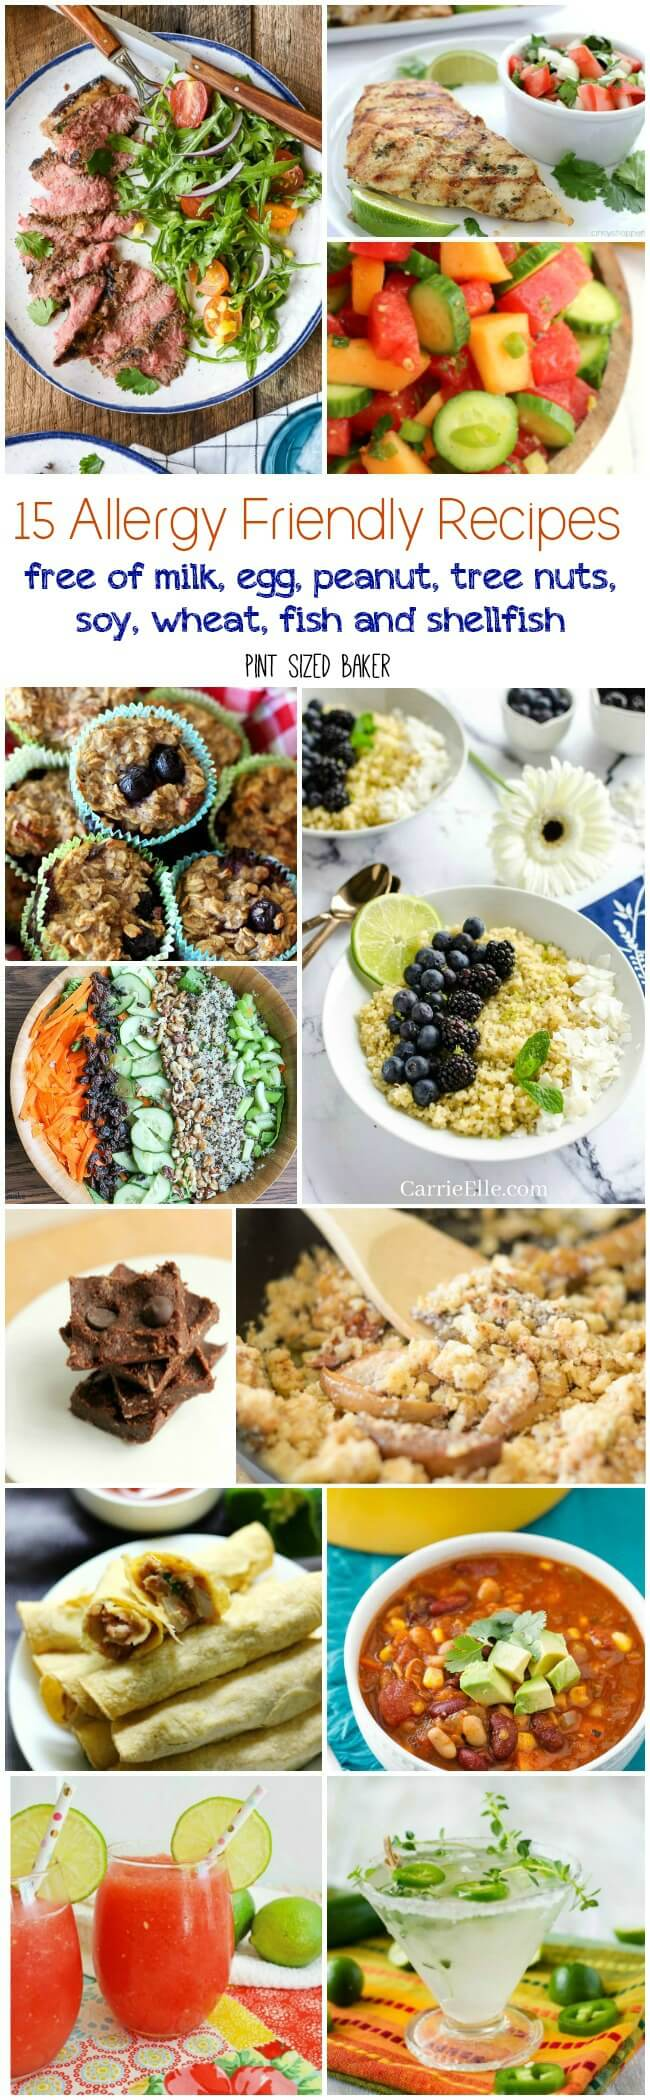 15 Allergy Friendly Recipes you can make so you can invite everyone over to your next dinner party! These recipes contain NONE of the common food allergy items - NOmilk, egg, peanut, tree nuts, soy, wheat, fish and shellfish.